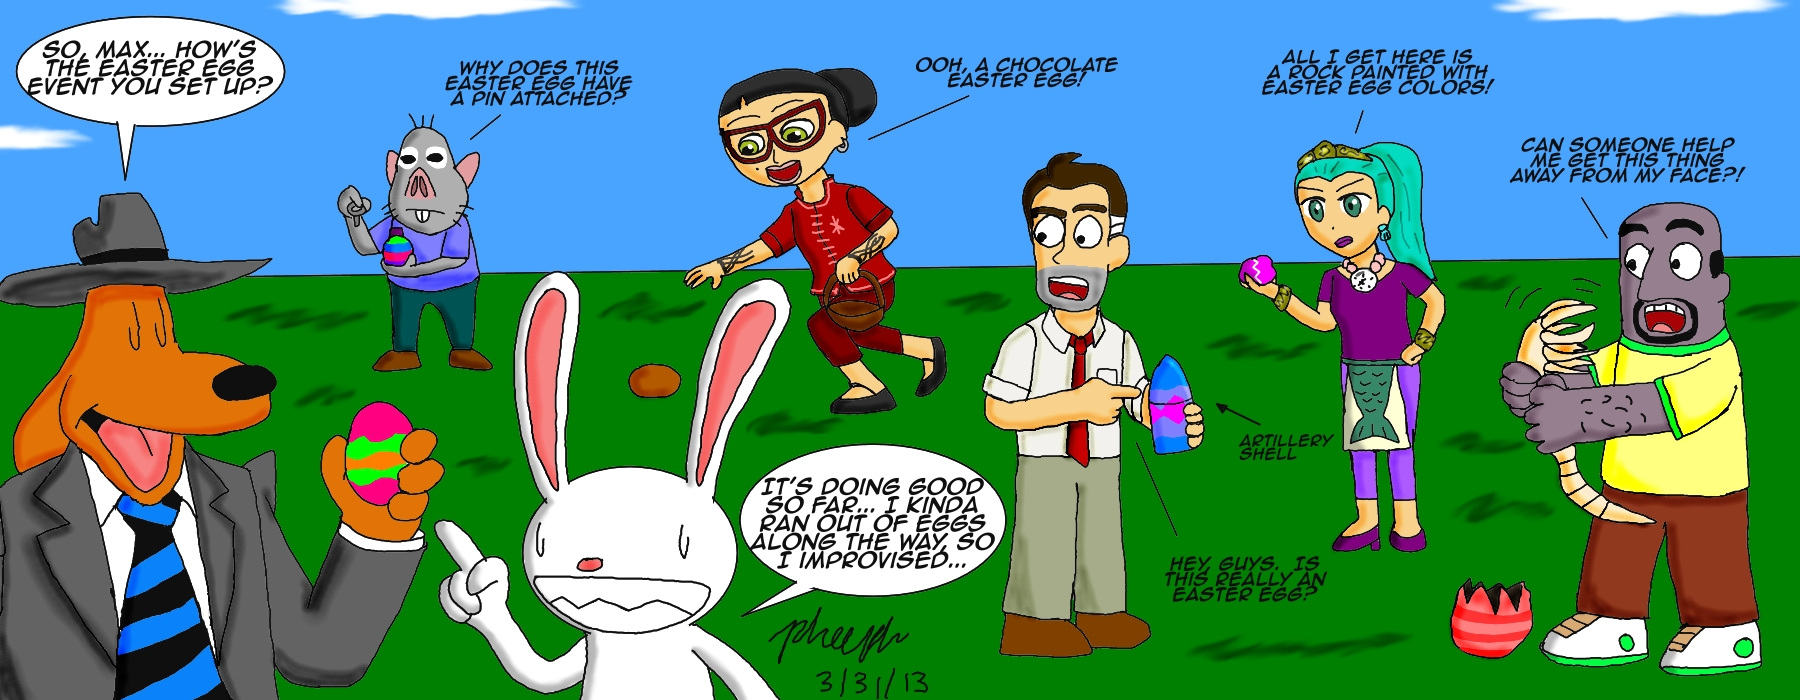 easter_egg_hunt_by_pheeph-d5zyl4r.jpg